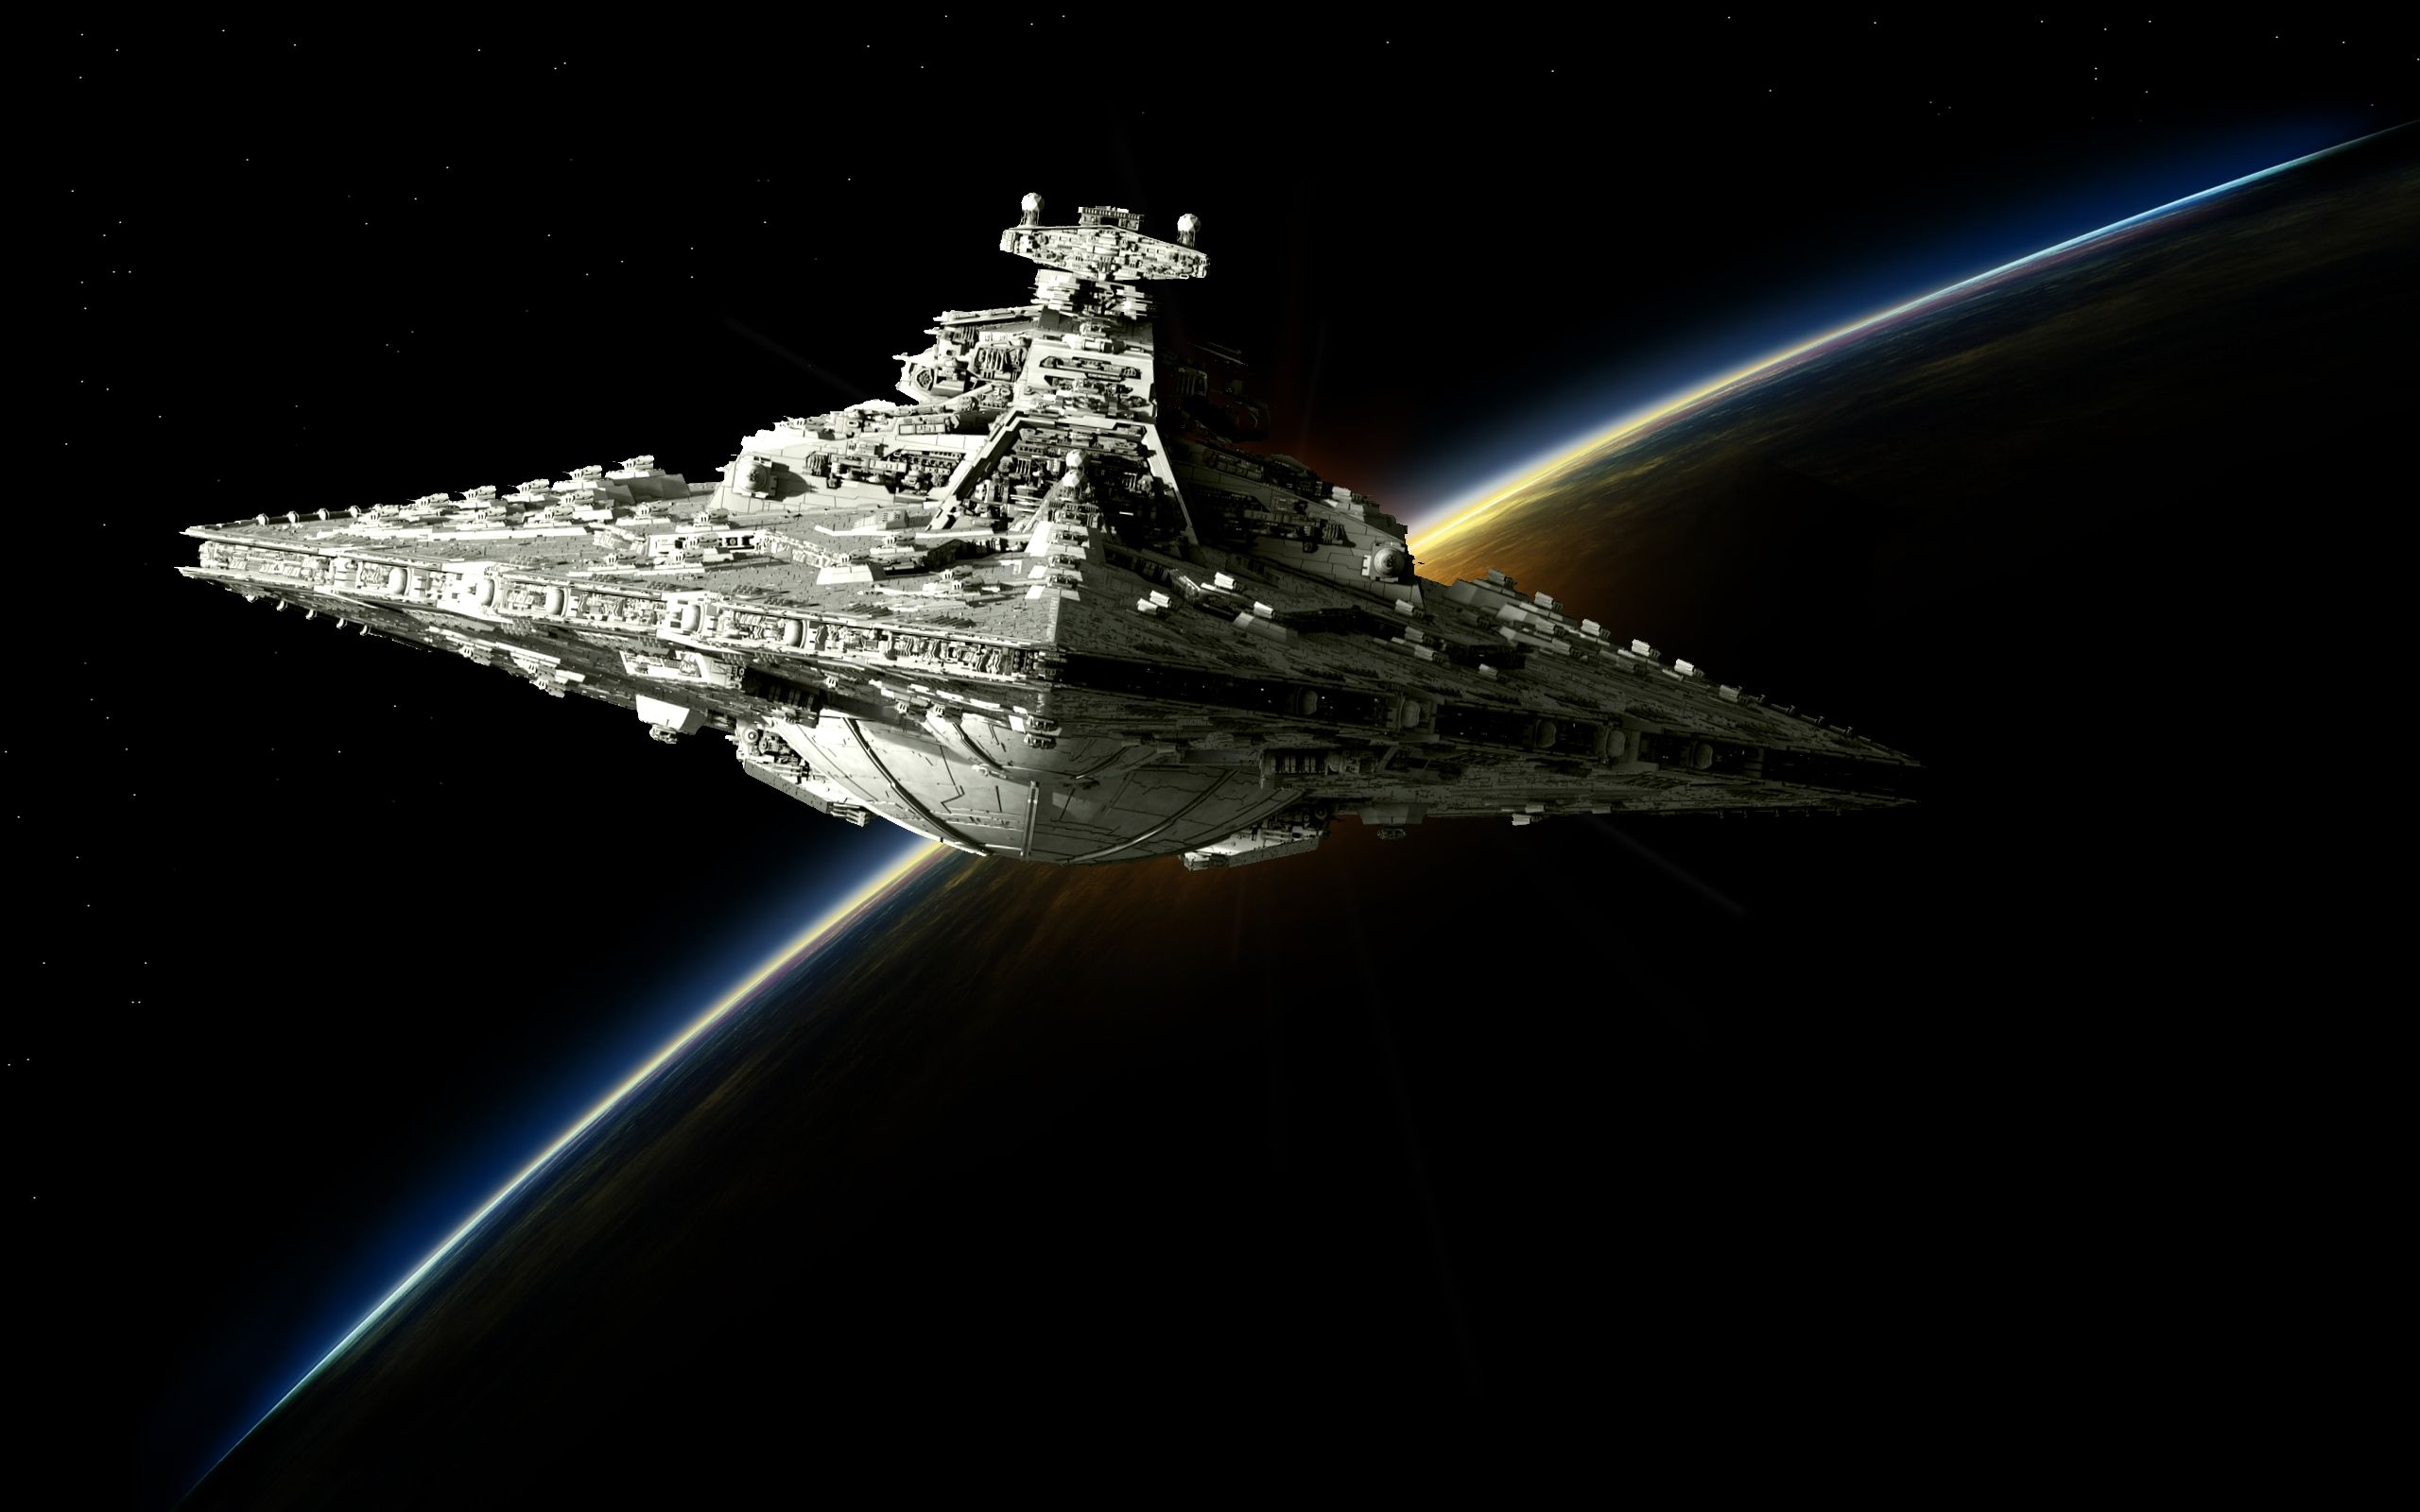 My _MASSIVE_ Star Wars Wallpaper Dump - Most images [1920x1080] Need #iPhone #6S #Plus #Wallpaper/ #Background for #IPhone6SPlus? Follow iPhone 6S Plus ...